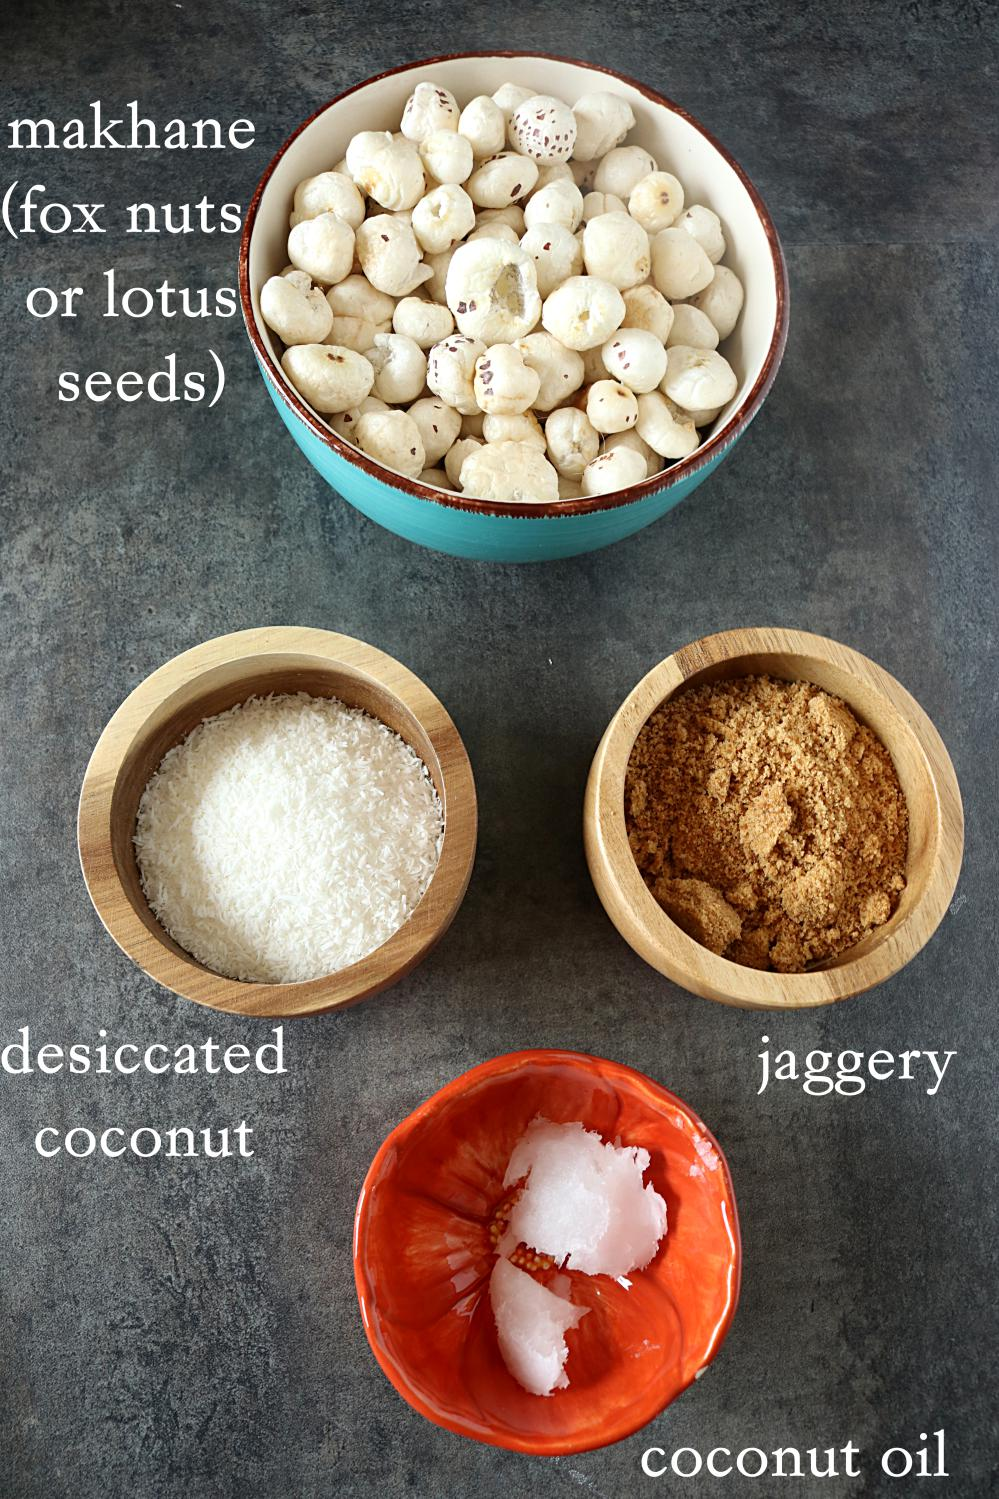 Ingredients for Gur Makhane or Jaggery Caramelized Lotus Seeds